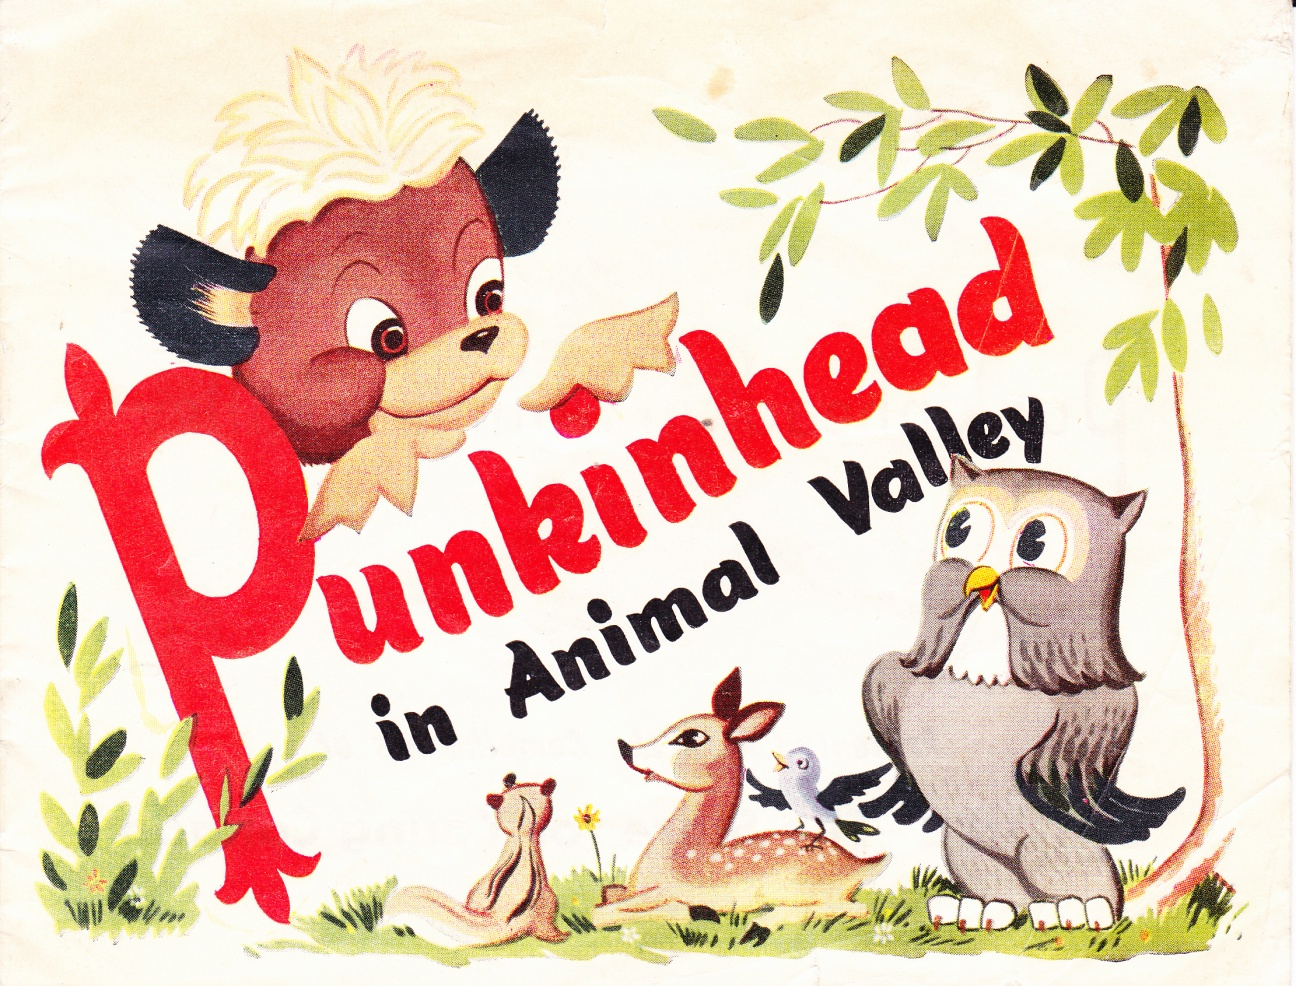 C:\Users\Robert\Documents\CARTOONING ILLUSTRATION ANIMATION\IMAGE CARTOON\IMAGE CARTOON P\PUNKINHEAD in Animal Valley.jpg